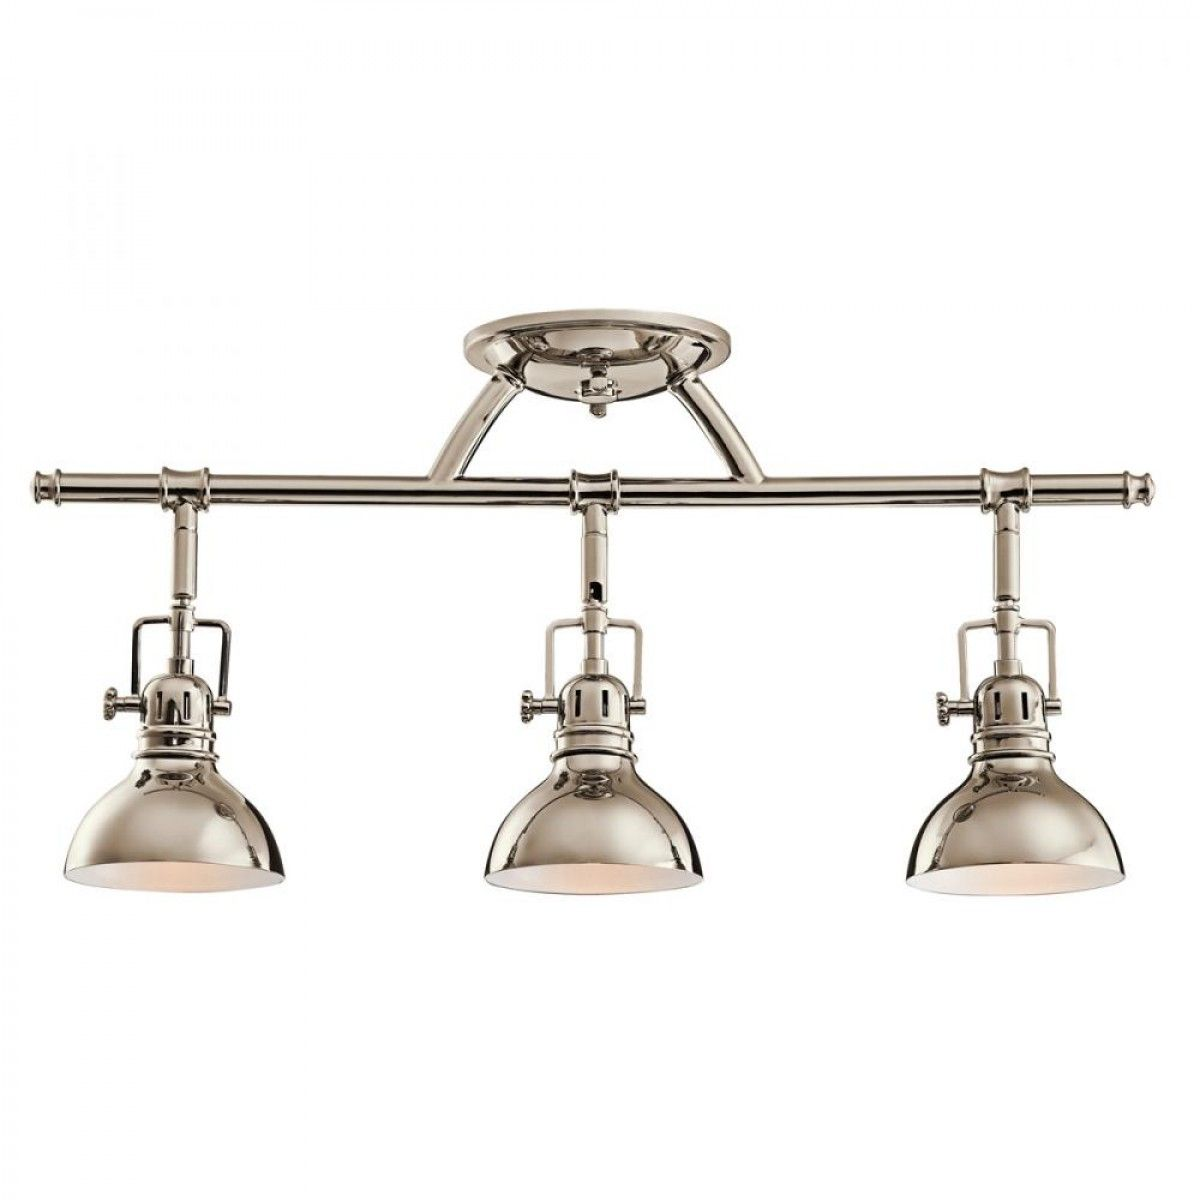 Three light polished nickel directional flush mount track fixtures three light polished nickel directional flush mount track fixtures track lighting ceiling lights mozeypictures Image collections